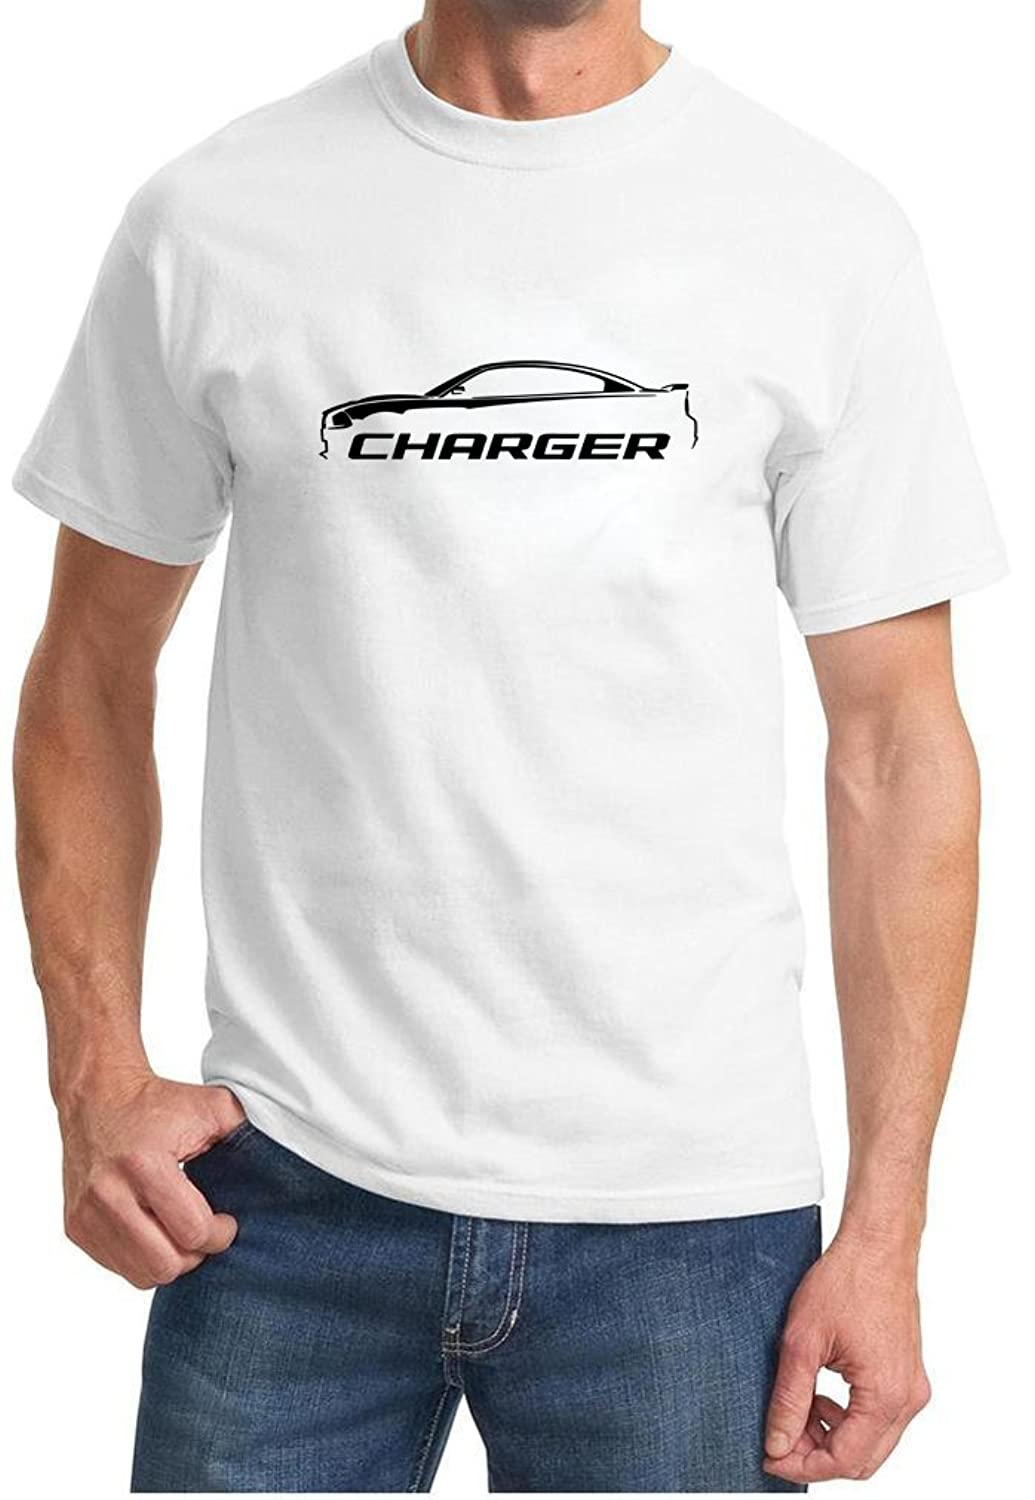 2010-14 Dodge Charger Classic Outline Design Tshirt 3XL white